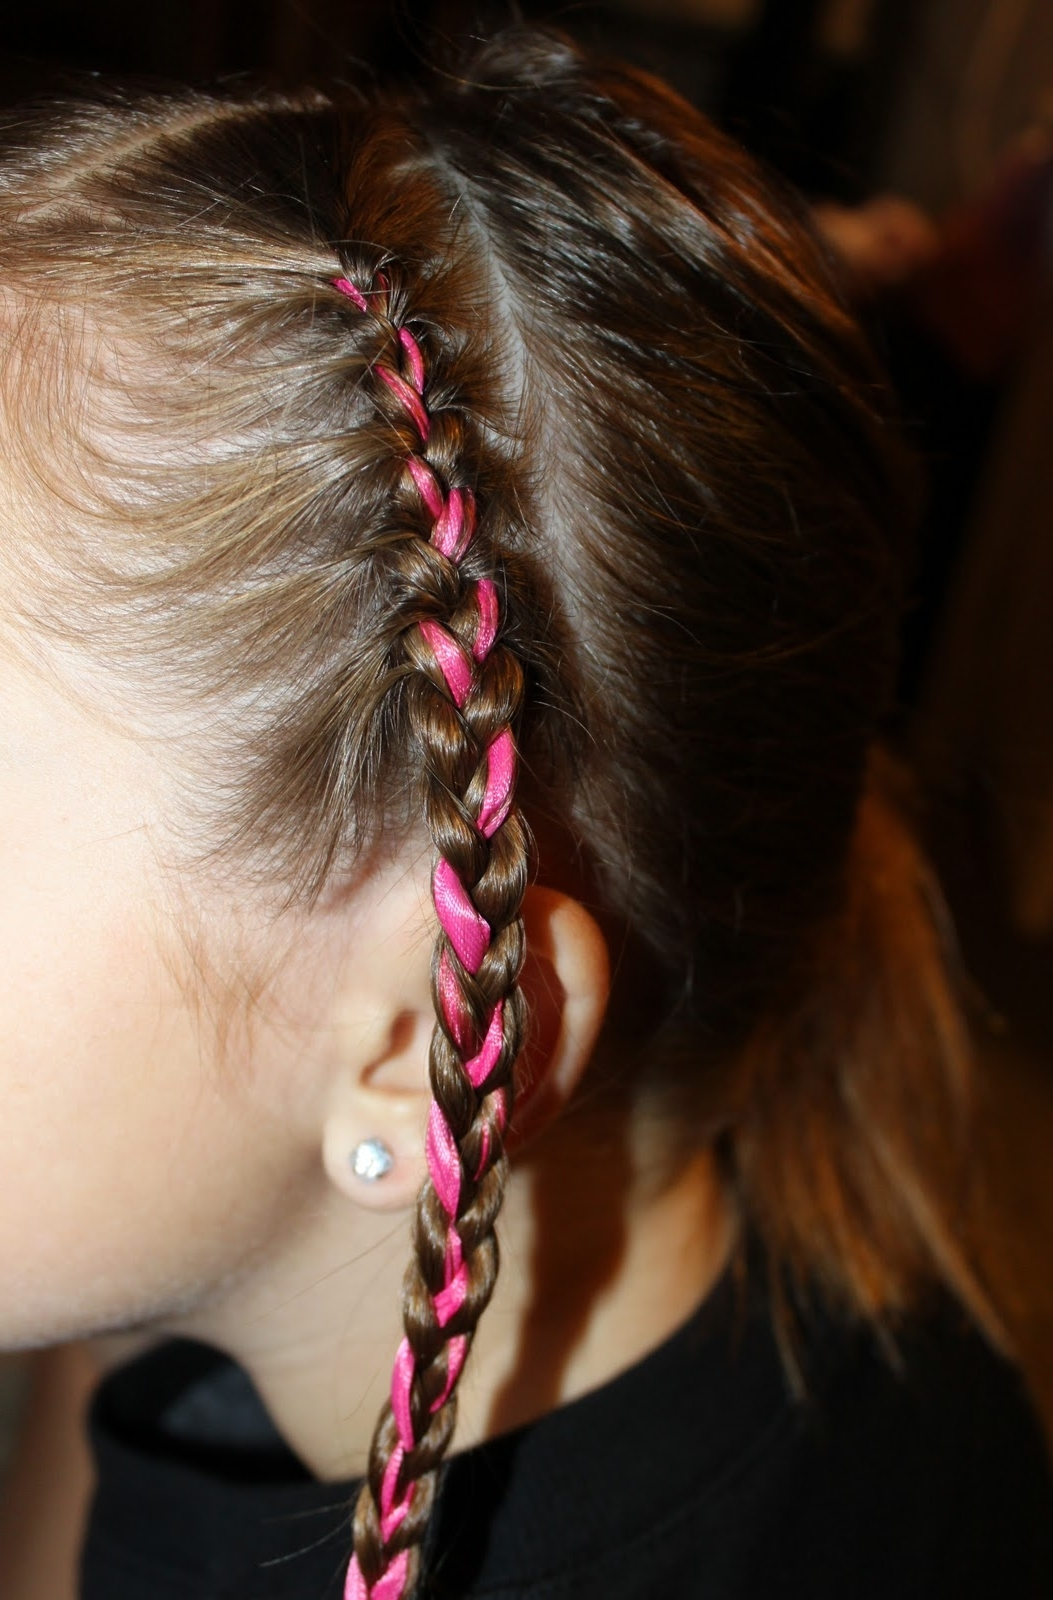 Hairstyles For Girls. (View 8 of 15)